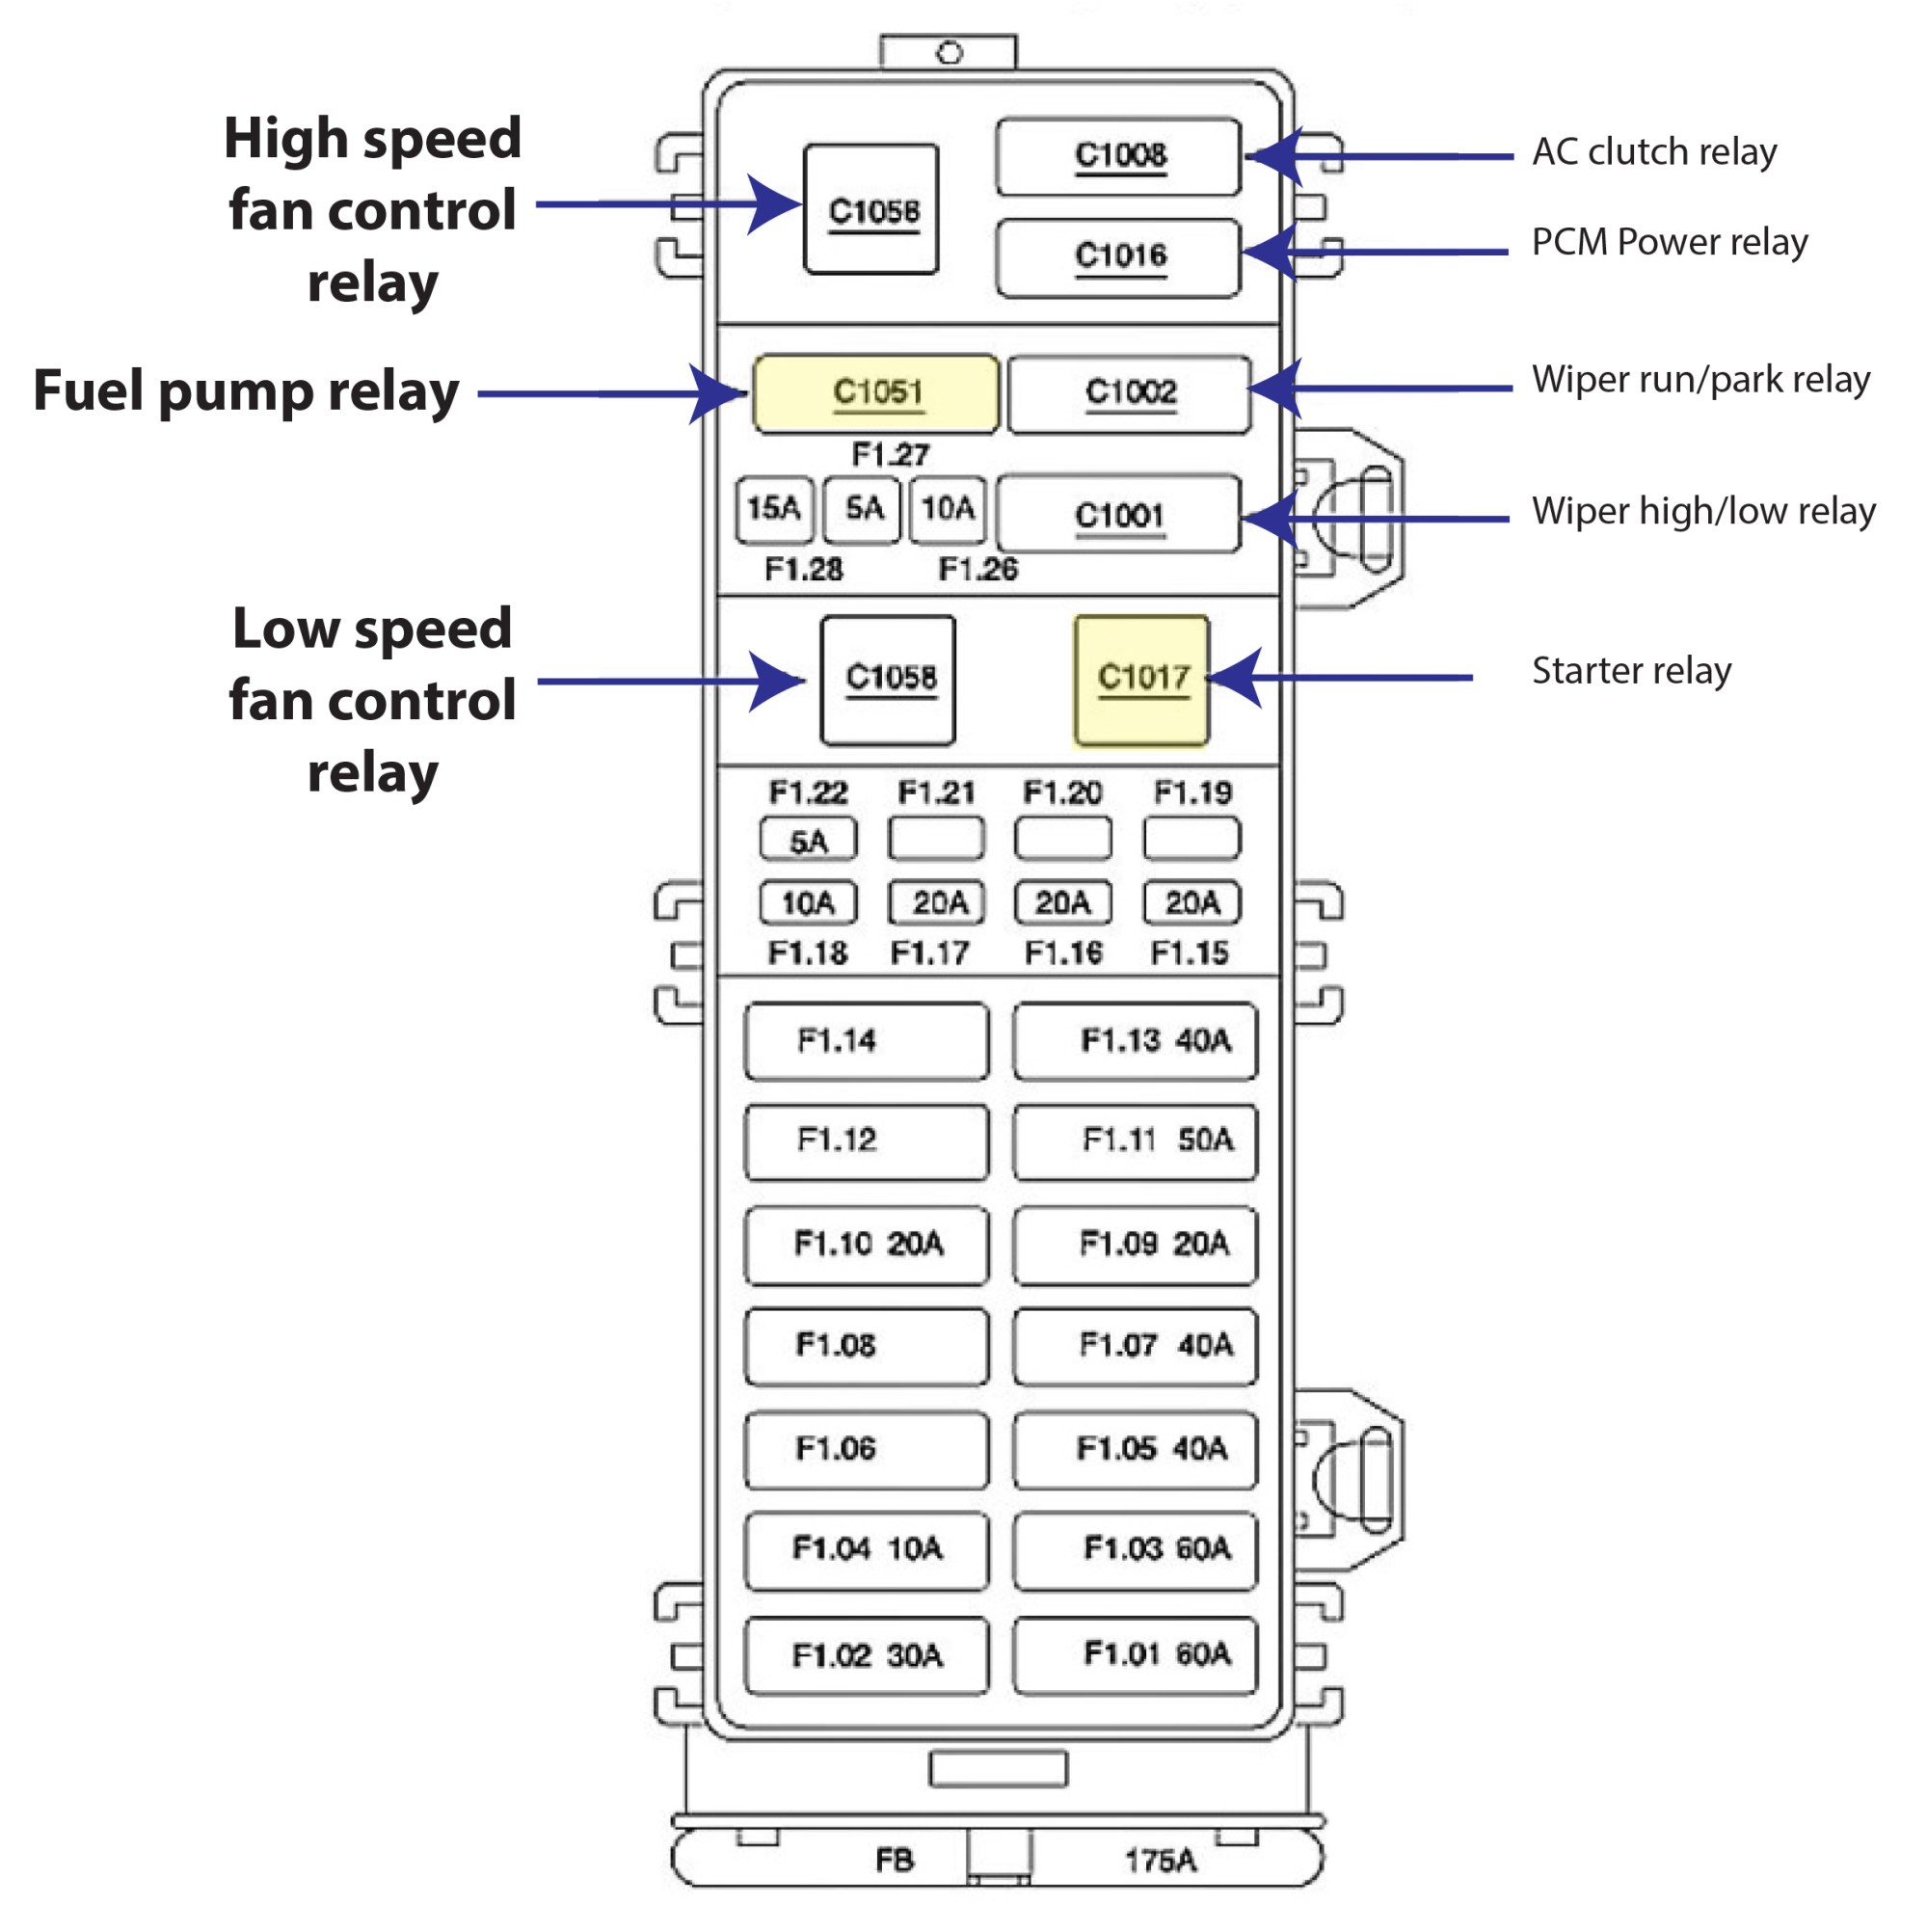 hight resolution of ford taurus 1999 fuse box diagram wiring diagram note 1996 ford taurus fuse panel diagram